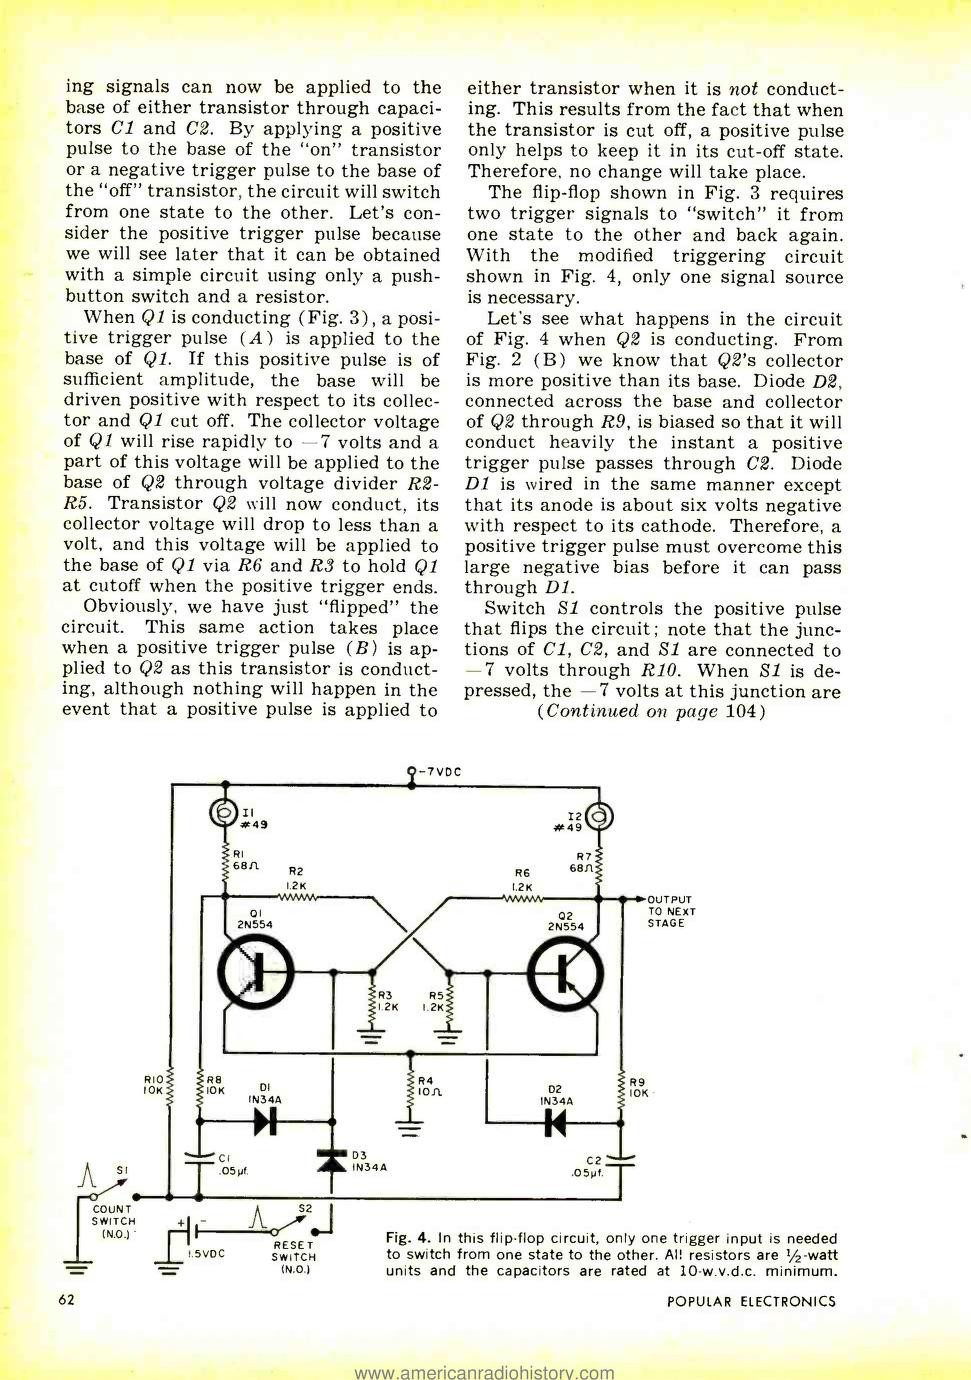 Clockwork Germanium Simple Electric Generator Diagram Http Wwwseekiccom Circuit From The Experience With 10tff And Looking At Vintage Circuits I Realise Something About Edge Triggered Flip Flops Only 2 Transistors